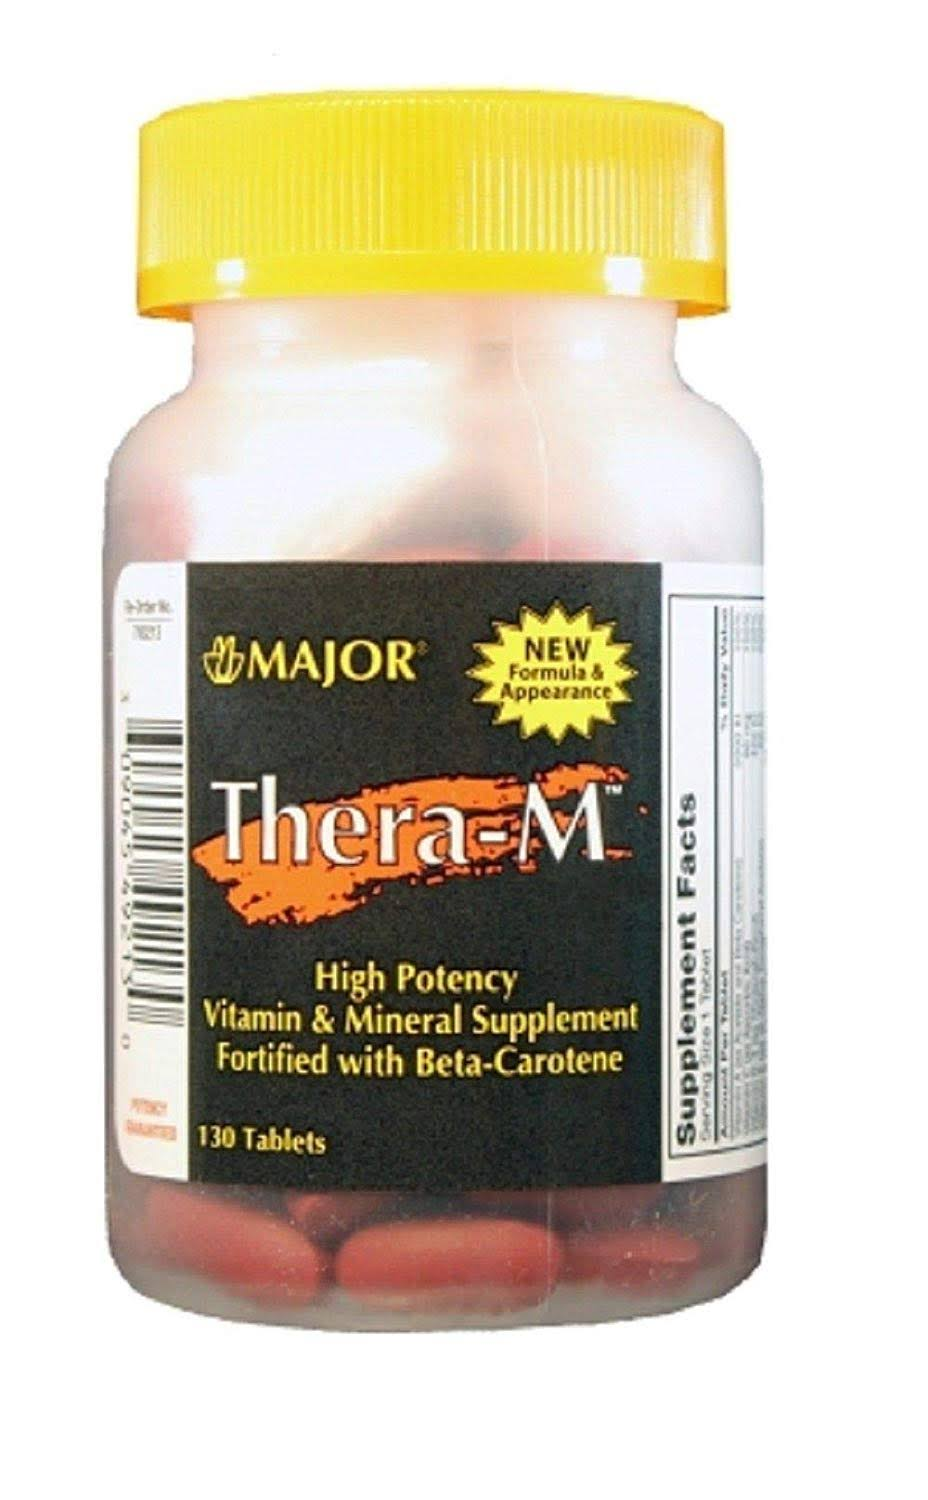 Major Thera M Tablets High Potency Dietary Supplement - 130ct